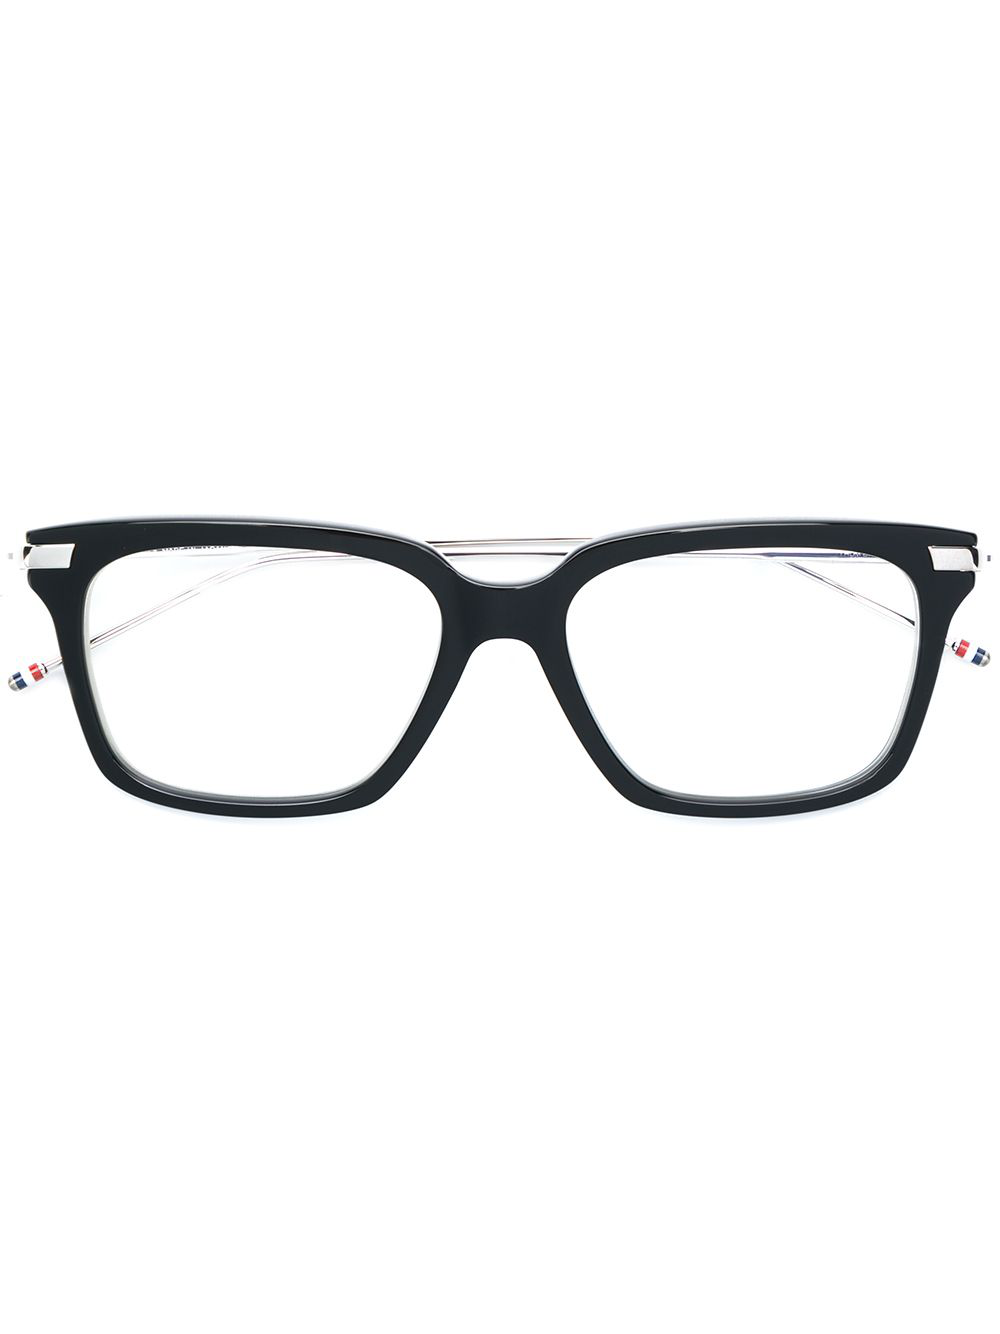 766c78241da Thom Browne Eyewear Rectangle Frame Glasses - Black